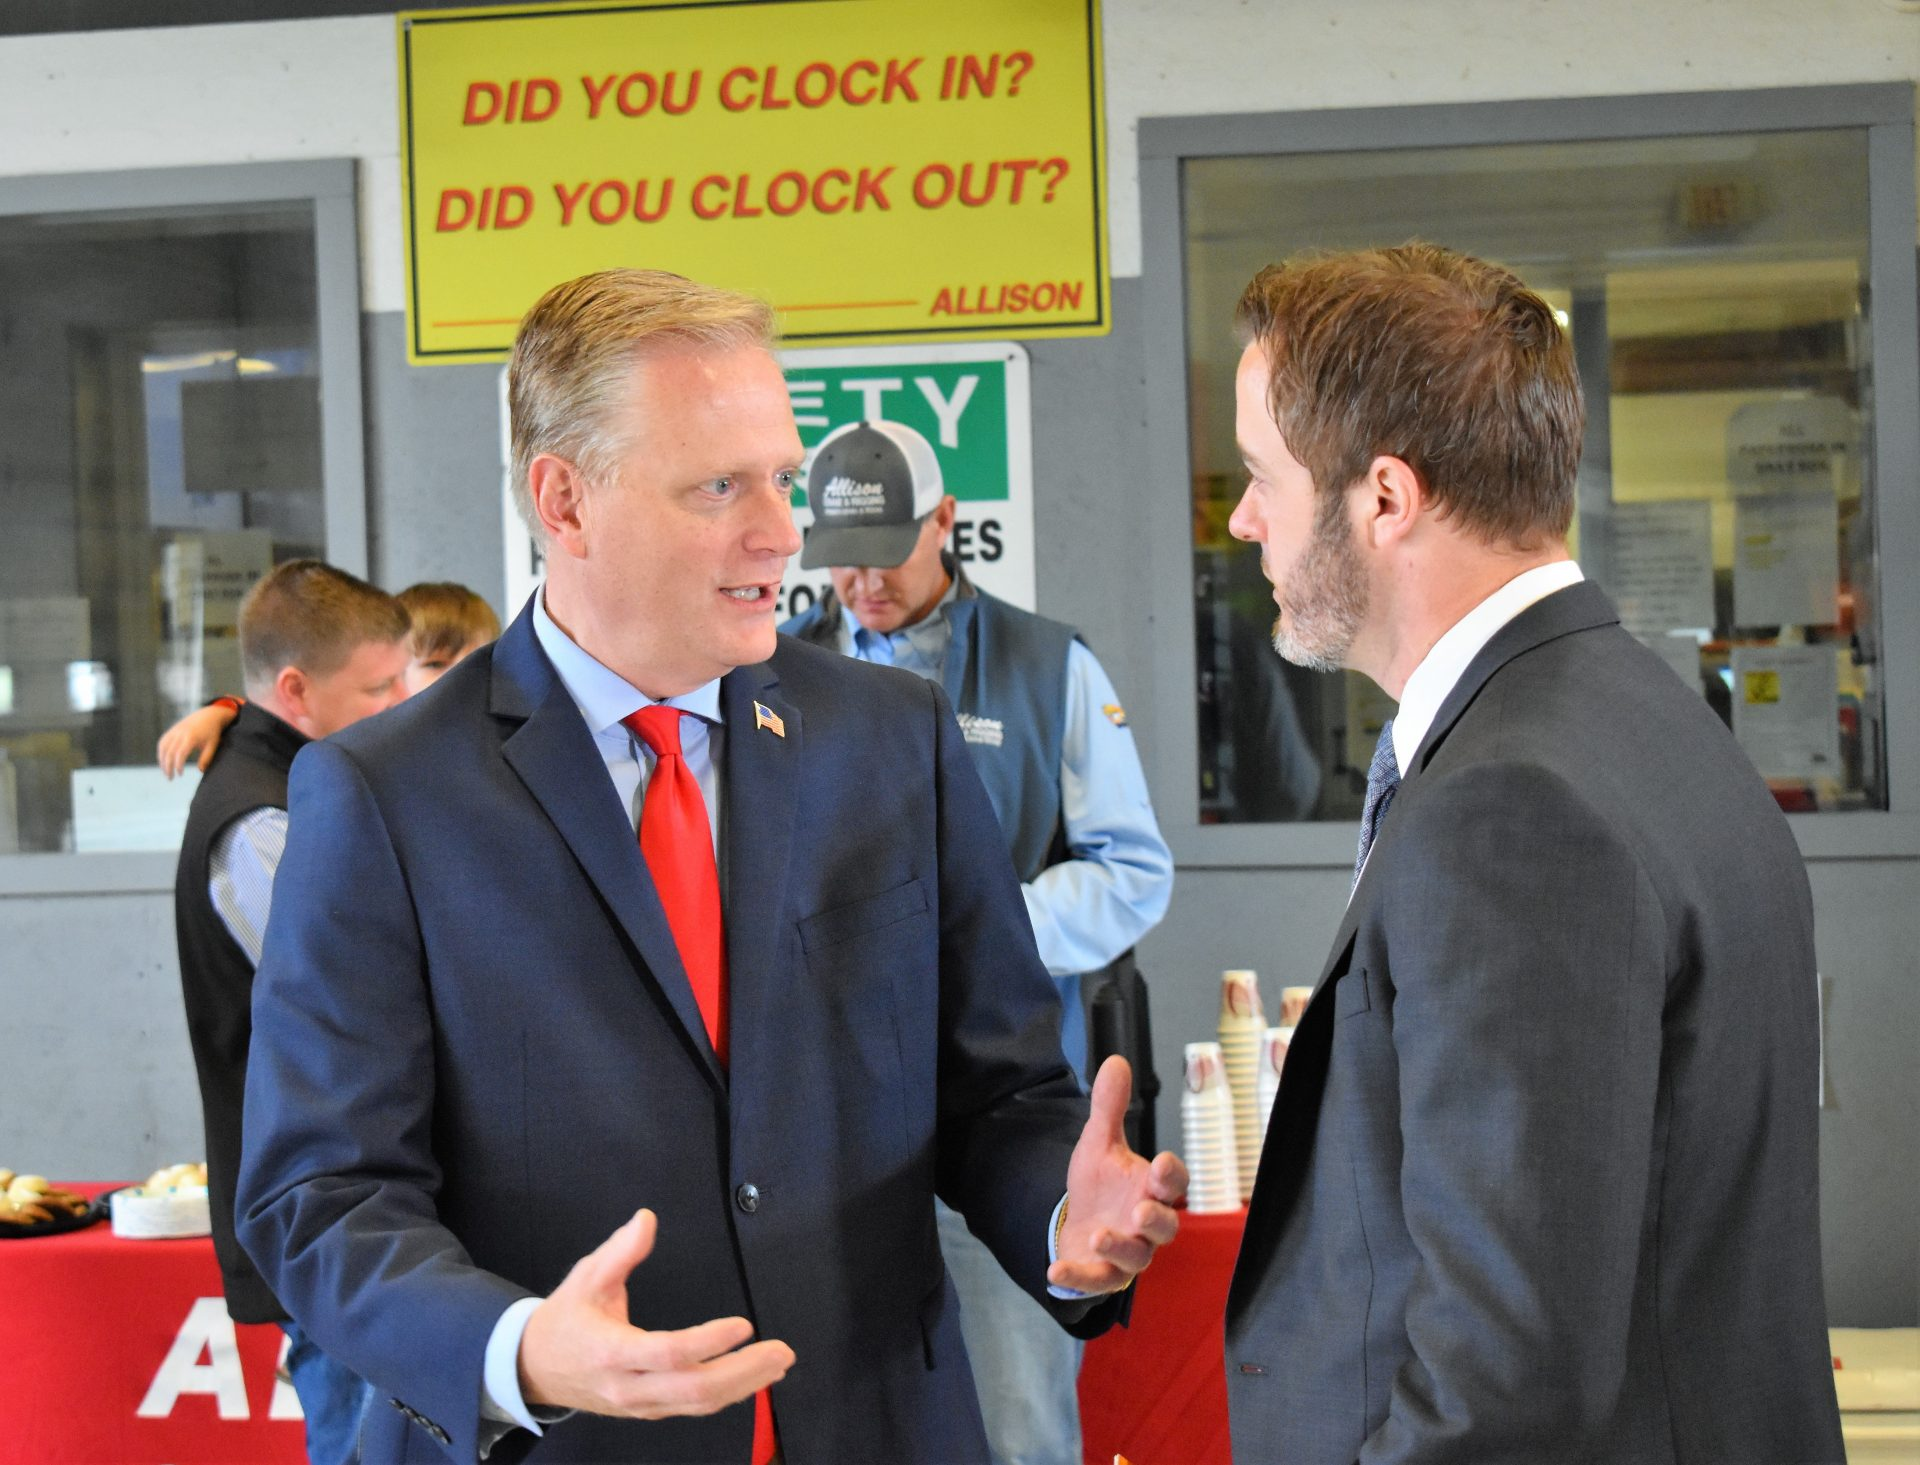 Republican congressional candidate Fred Keller speaks with Ben Taylor of the U.S. Chamber of Commerce on May 2, 2019. The chamber endorsed Keller during an event at Allison Crane & Rigging, outside Williamsport.